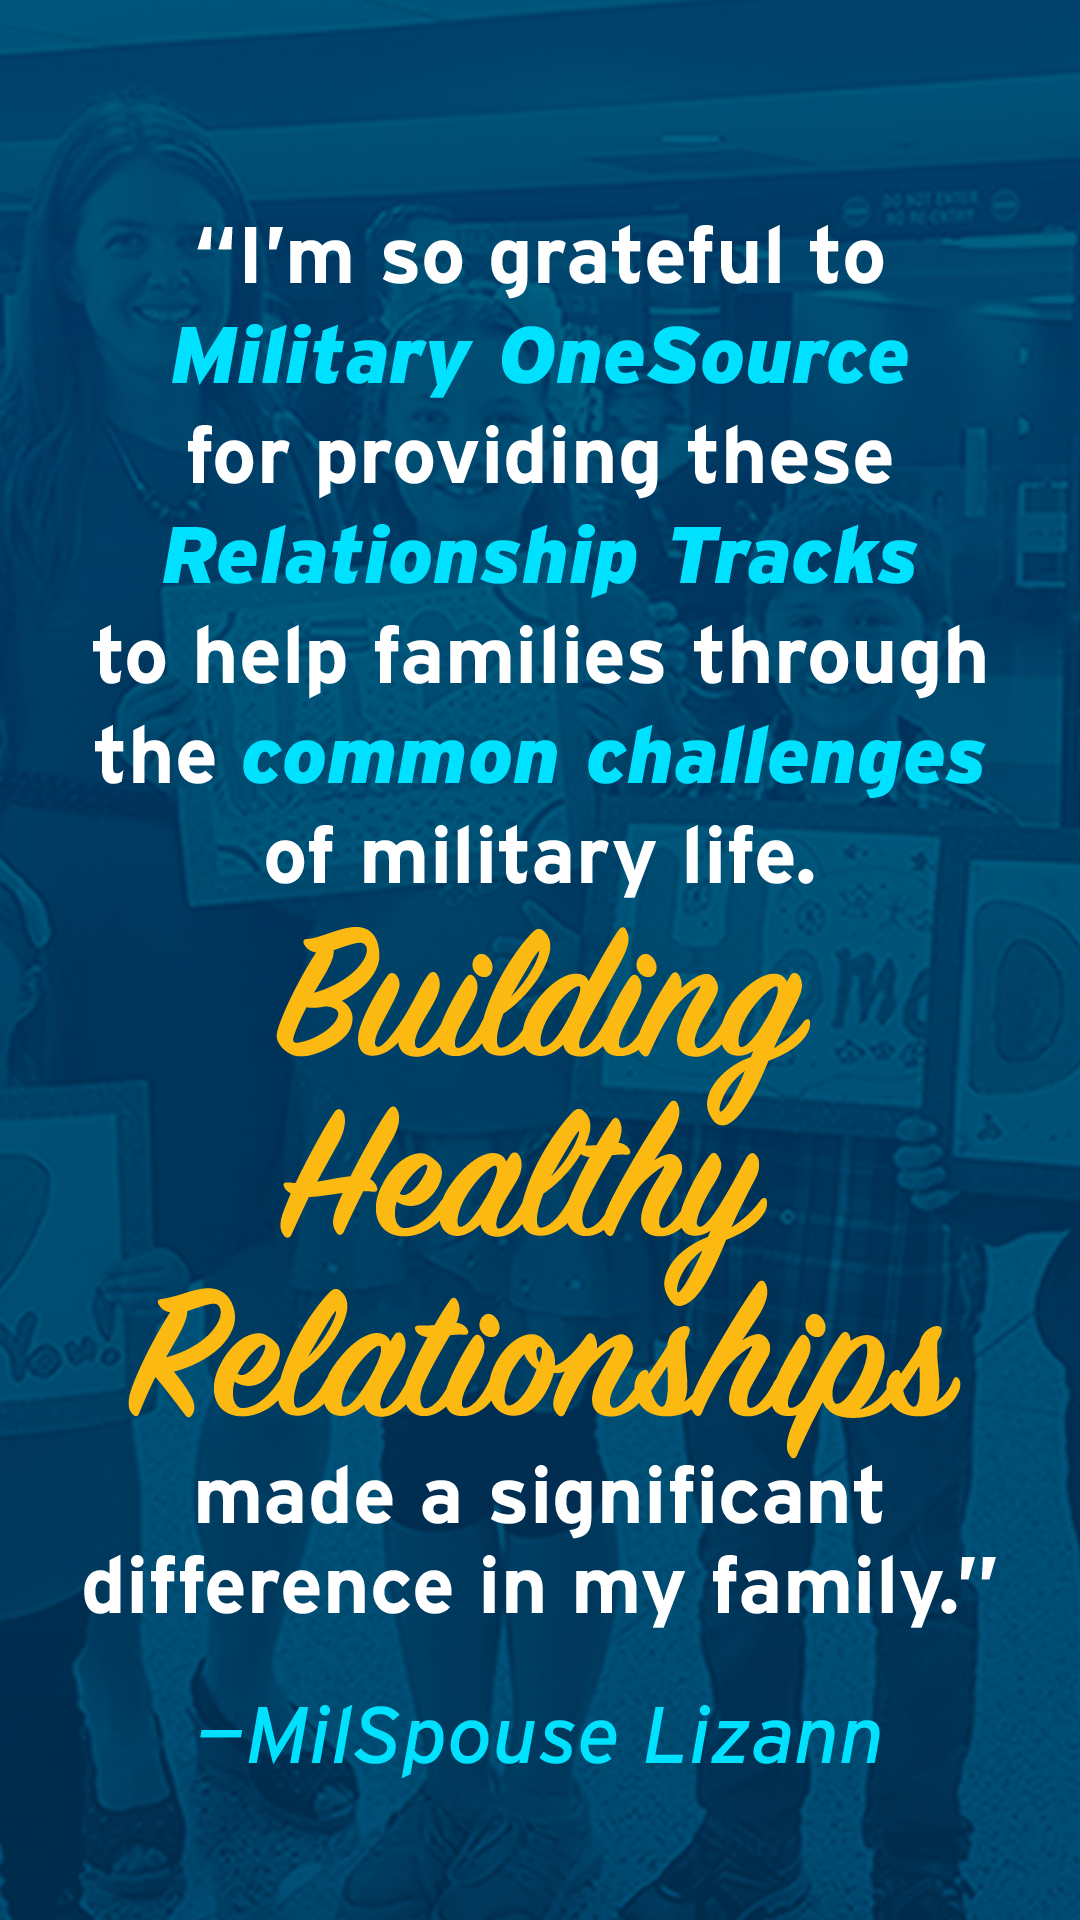 Building Healthy Relationships Gives You The Building